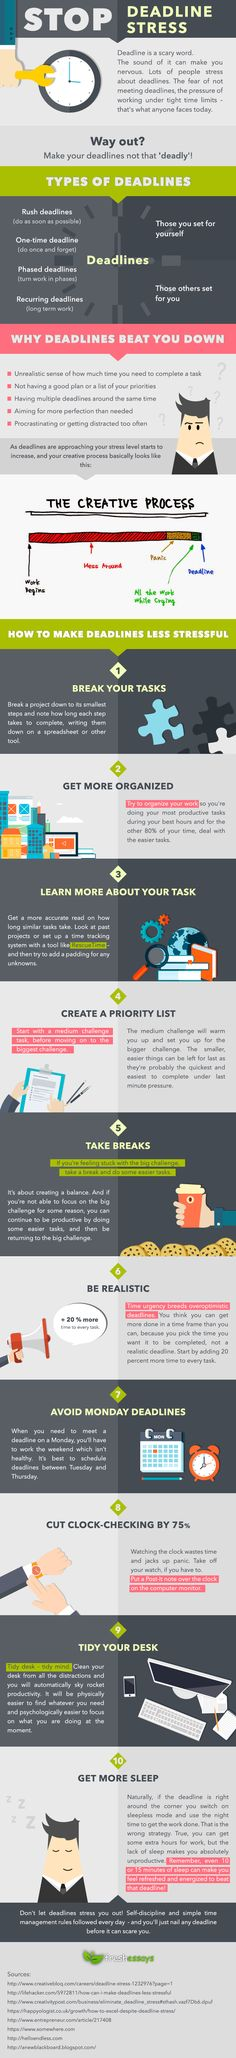 Stop Deadline Stress #Infographic #Stress